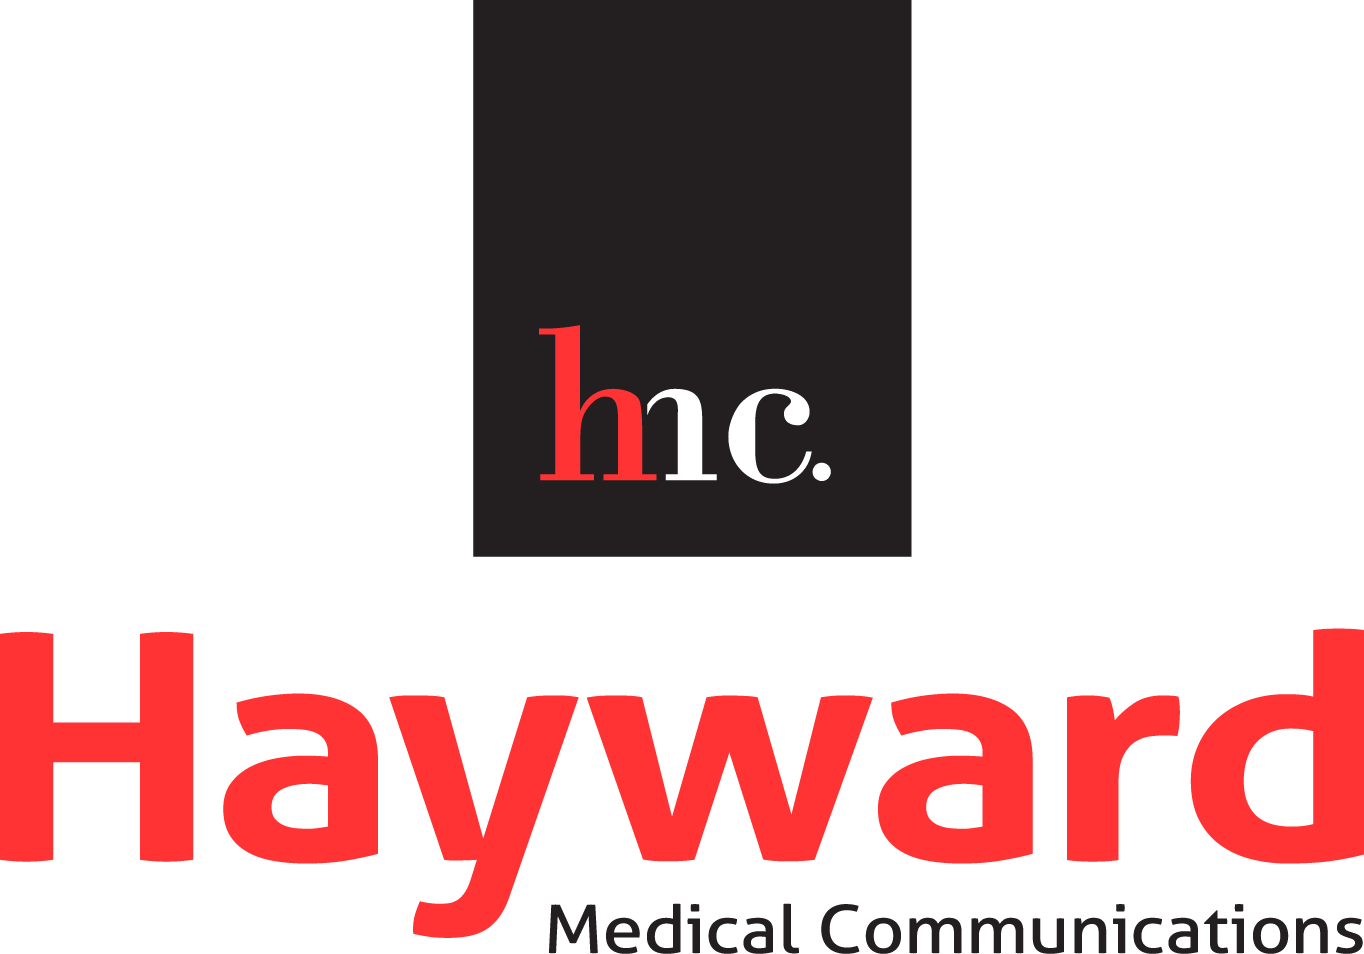 hayward medical communications company logo